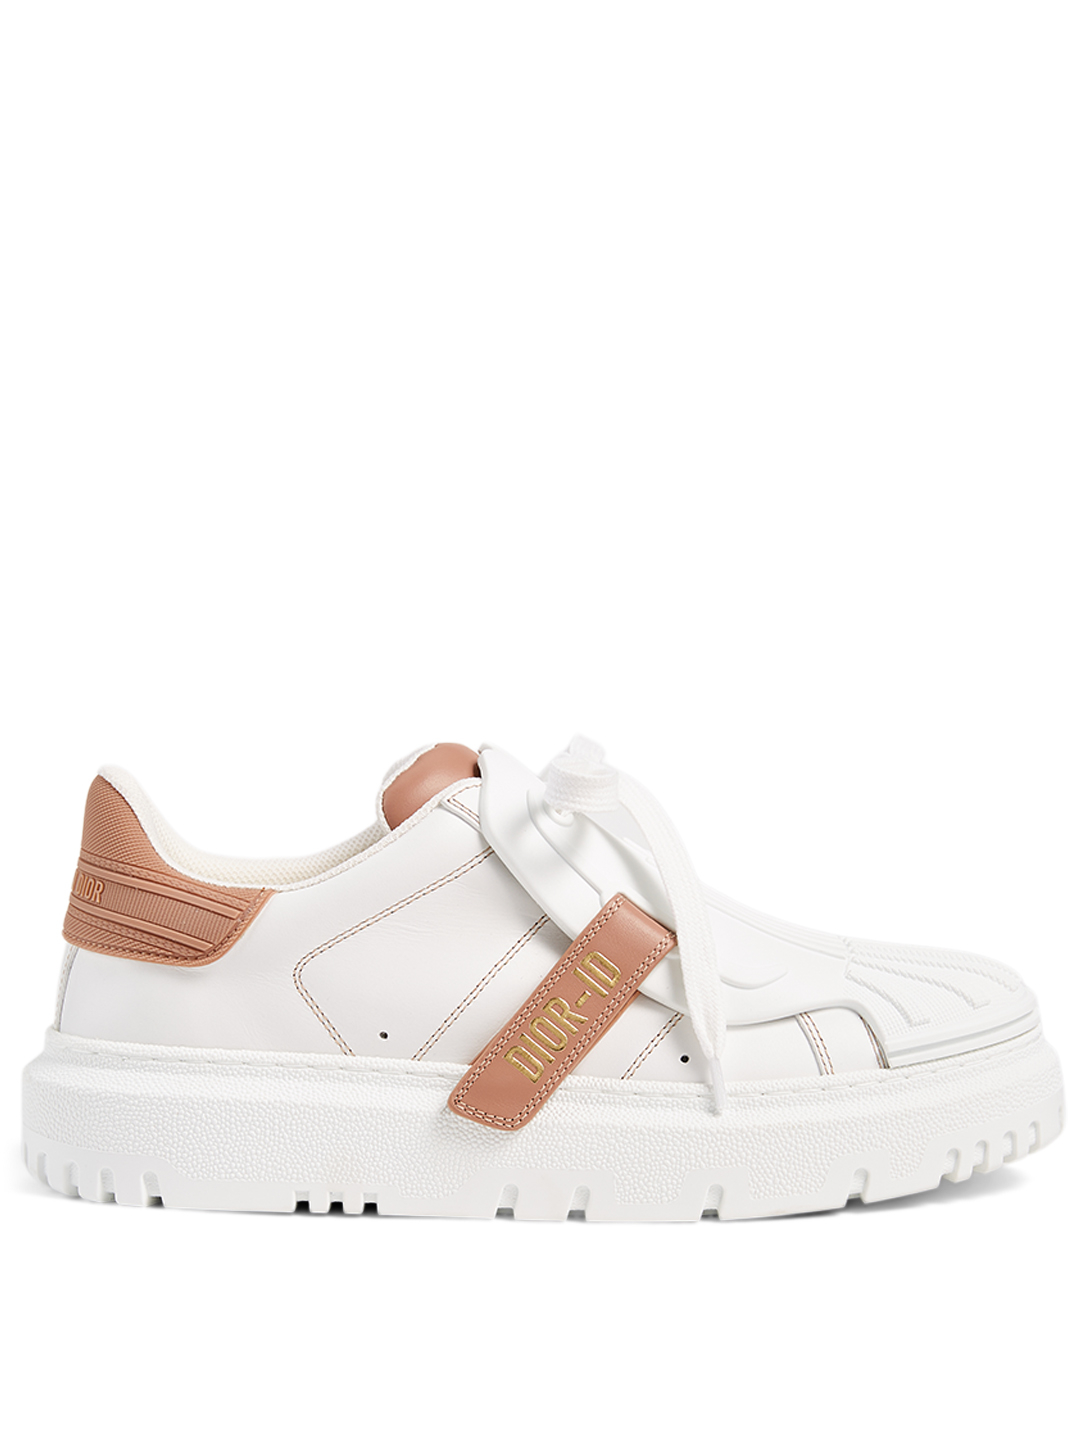 DIOR DIOR-ID Leather And Rubber Sneakers Women's Pink